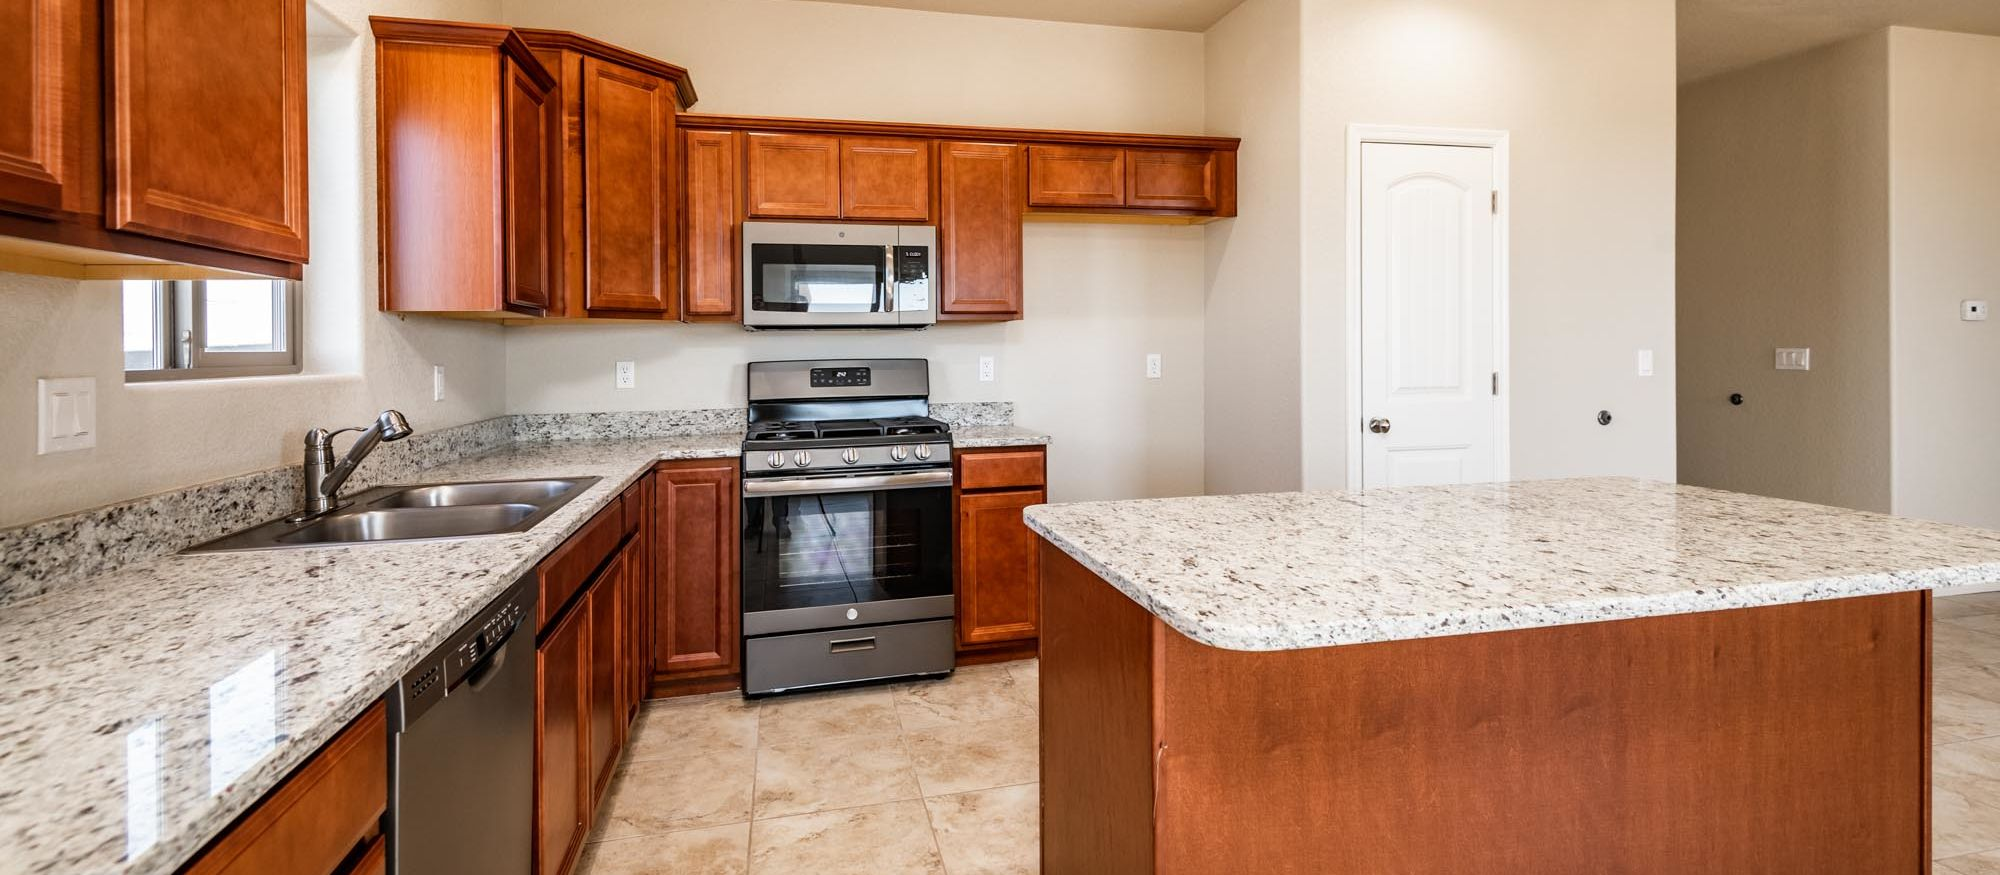 Kitchen featured in the Desert Rose 1472 2 Car By Angle Homes in Kingman-Lake Havasu City, AZ